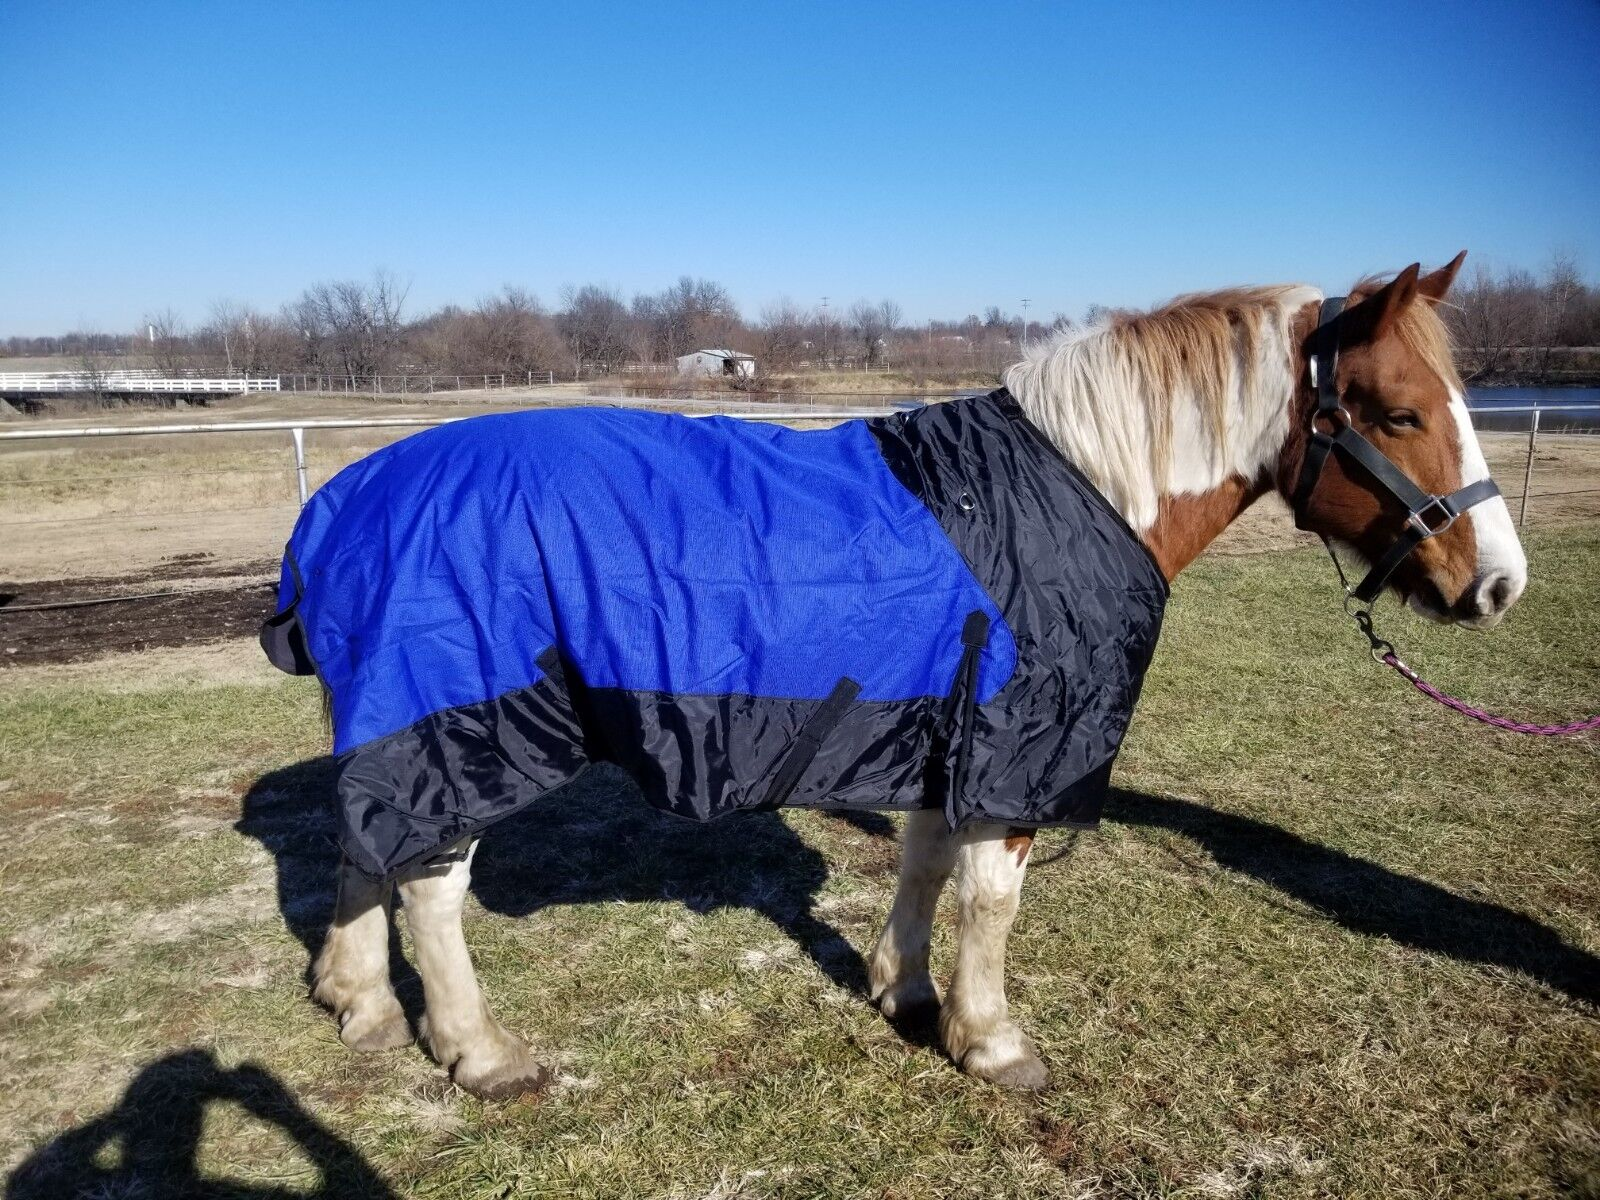 SALE  Draft horse 90  96  100  waterproof 1200 d sheet  not insulated  looking for sales agent